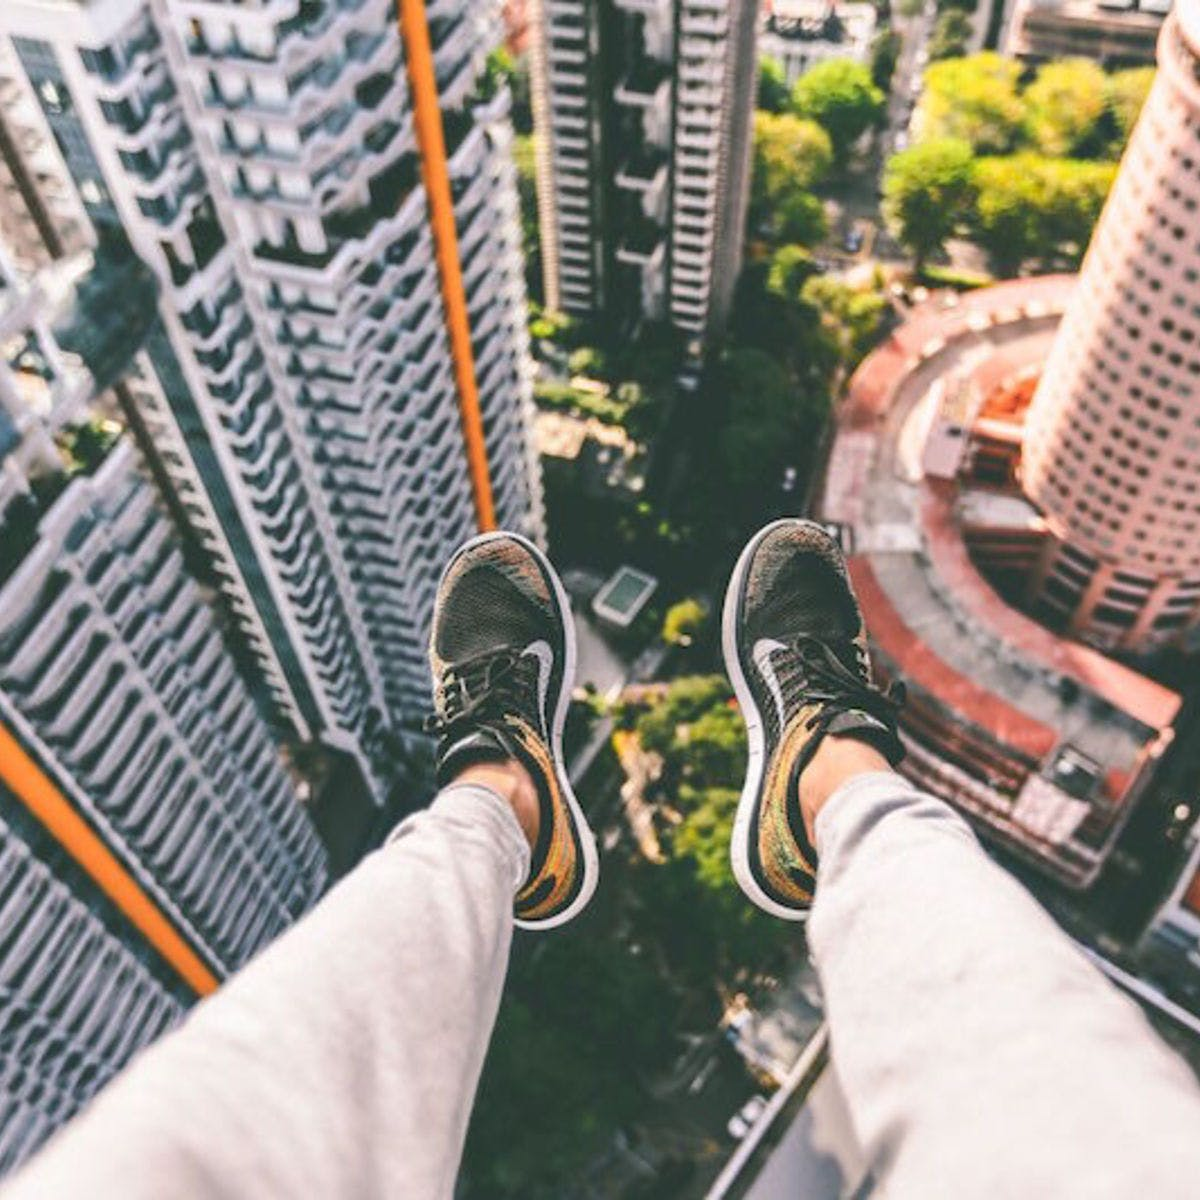 The Psychology of Thrill Seekers